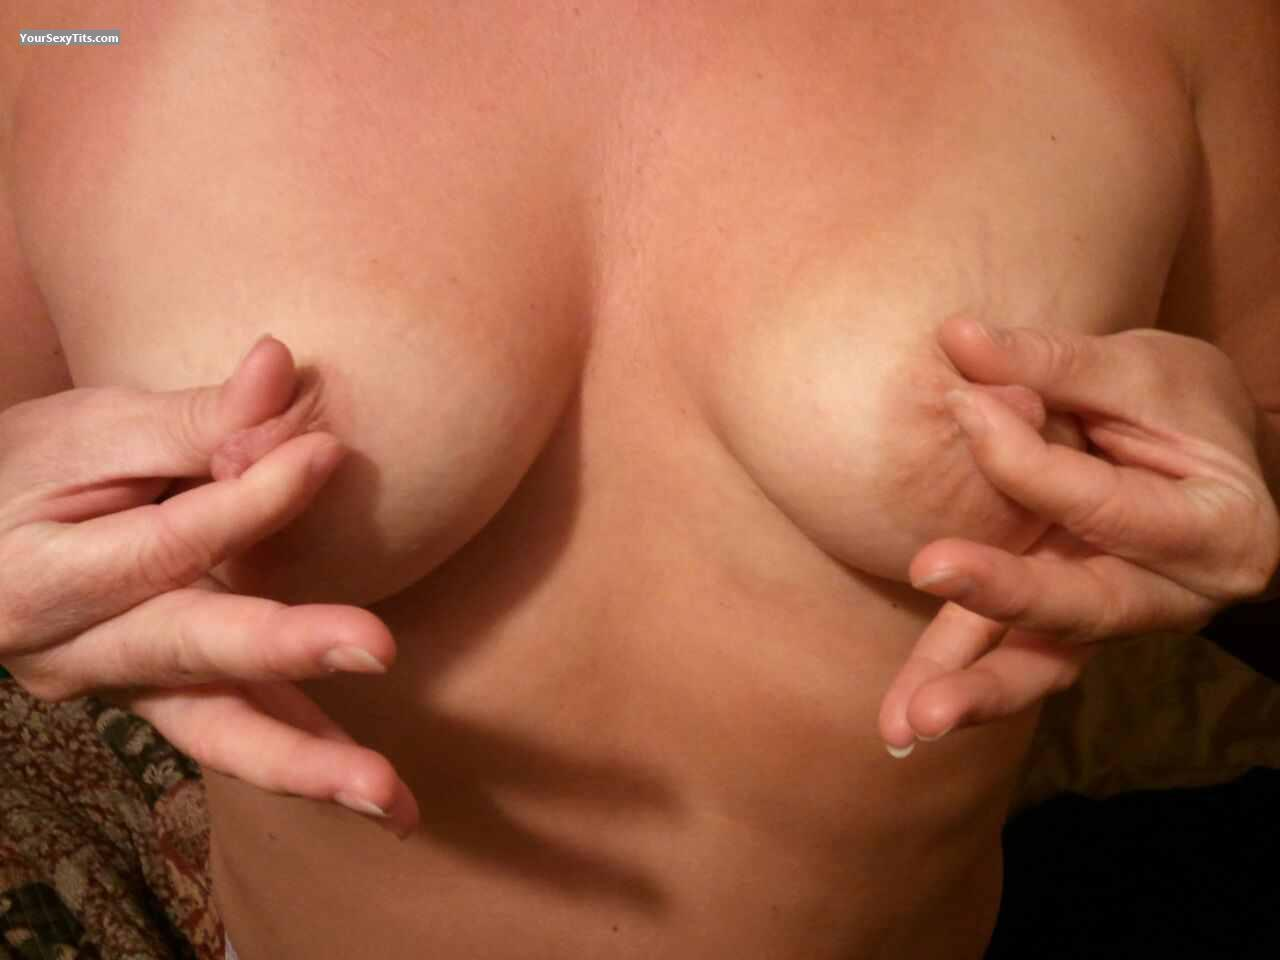 Tit Flash: Wife's Small Tits - Little Momma from United States